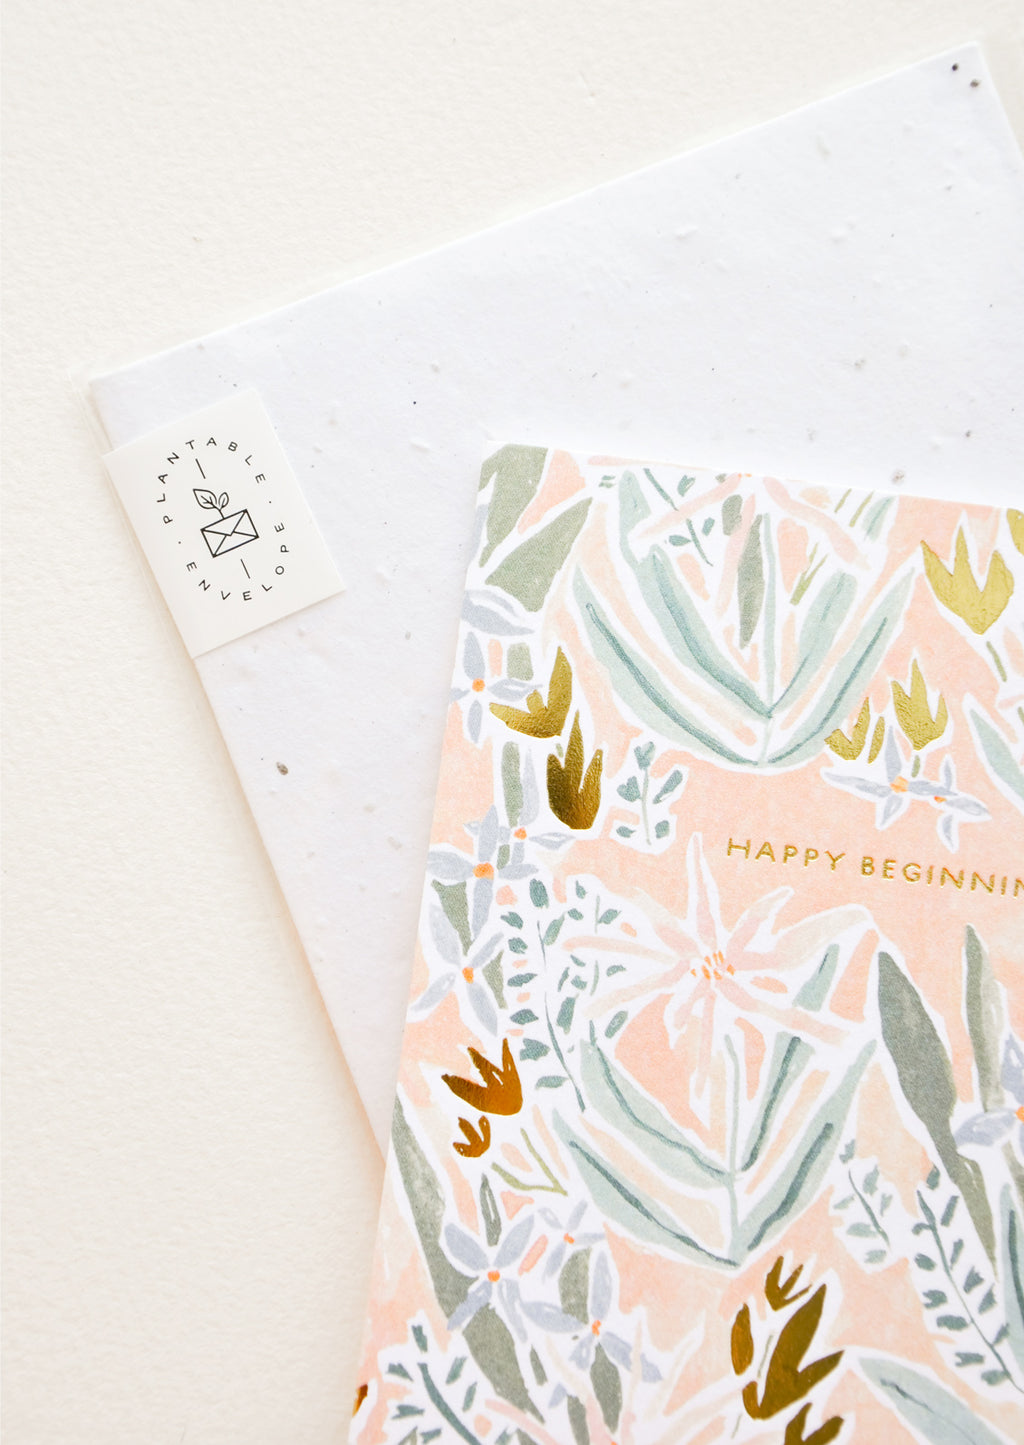 2: Copper text detailing on floral print greeting card